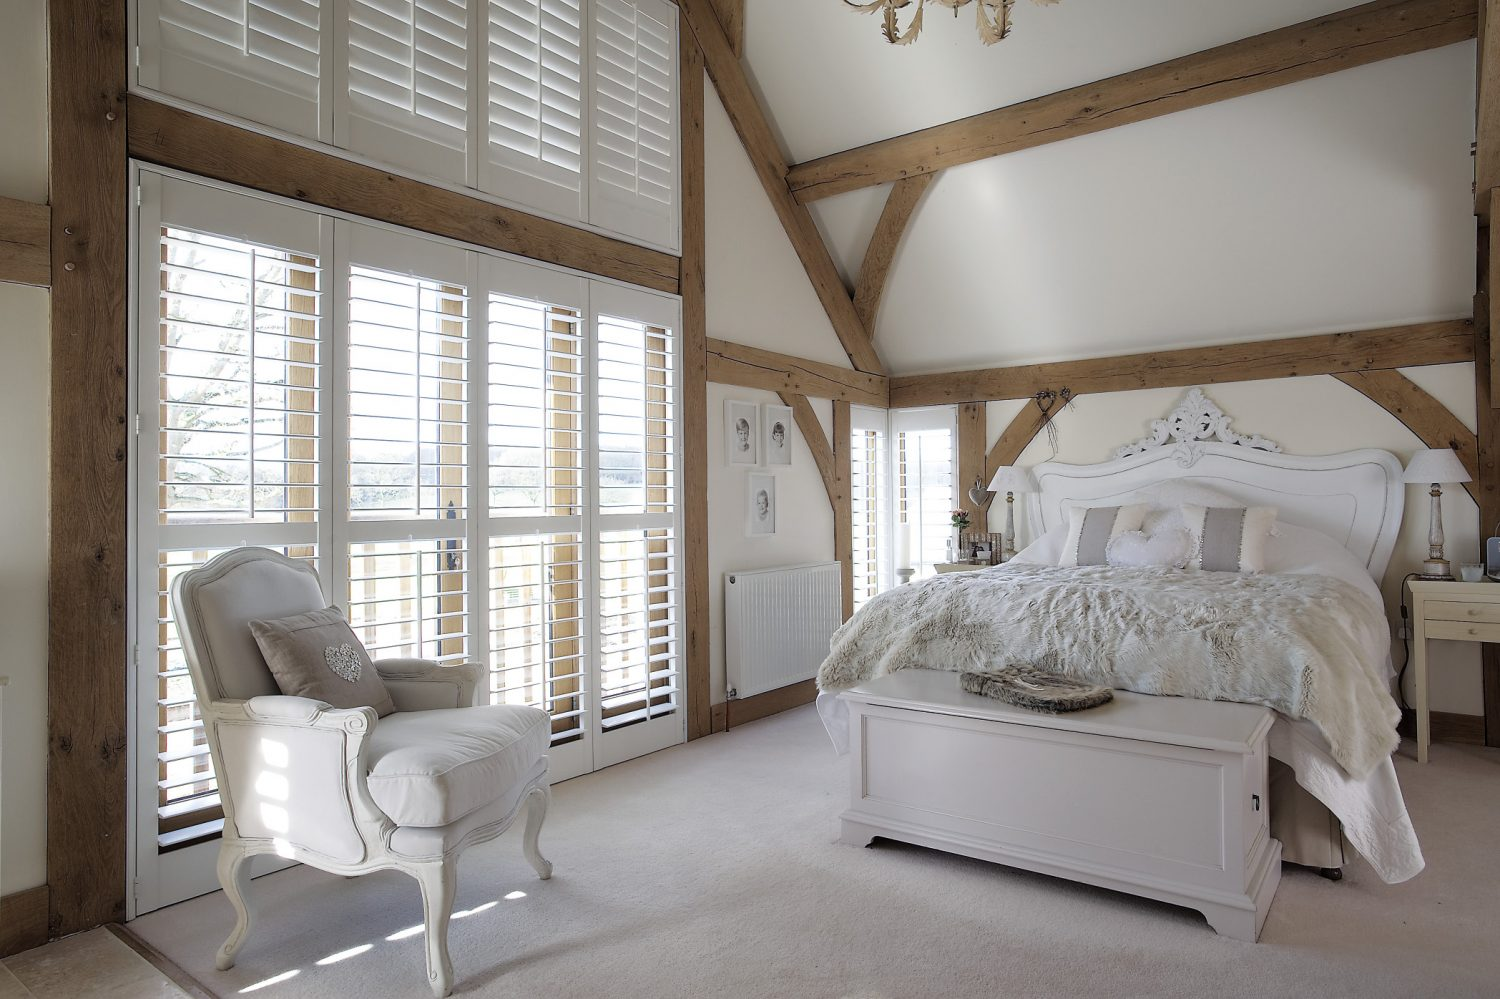 A careful use of symmetry in the master bedroom and bathroom creates a serene atmosphere. The carved and painted wooden bed was bought in Paris and is simply dressed with Portuguese piqué cotton. On a pair of bedside tables stand candle-style lamps with monogrammed linen shades bought from Charlotte Casadejus at the Wealden Times Christmas Fair. The simplicity of the scheme shows off the pale honey coloured oak beams to great effect